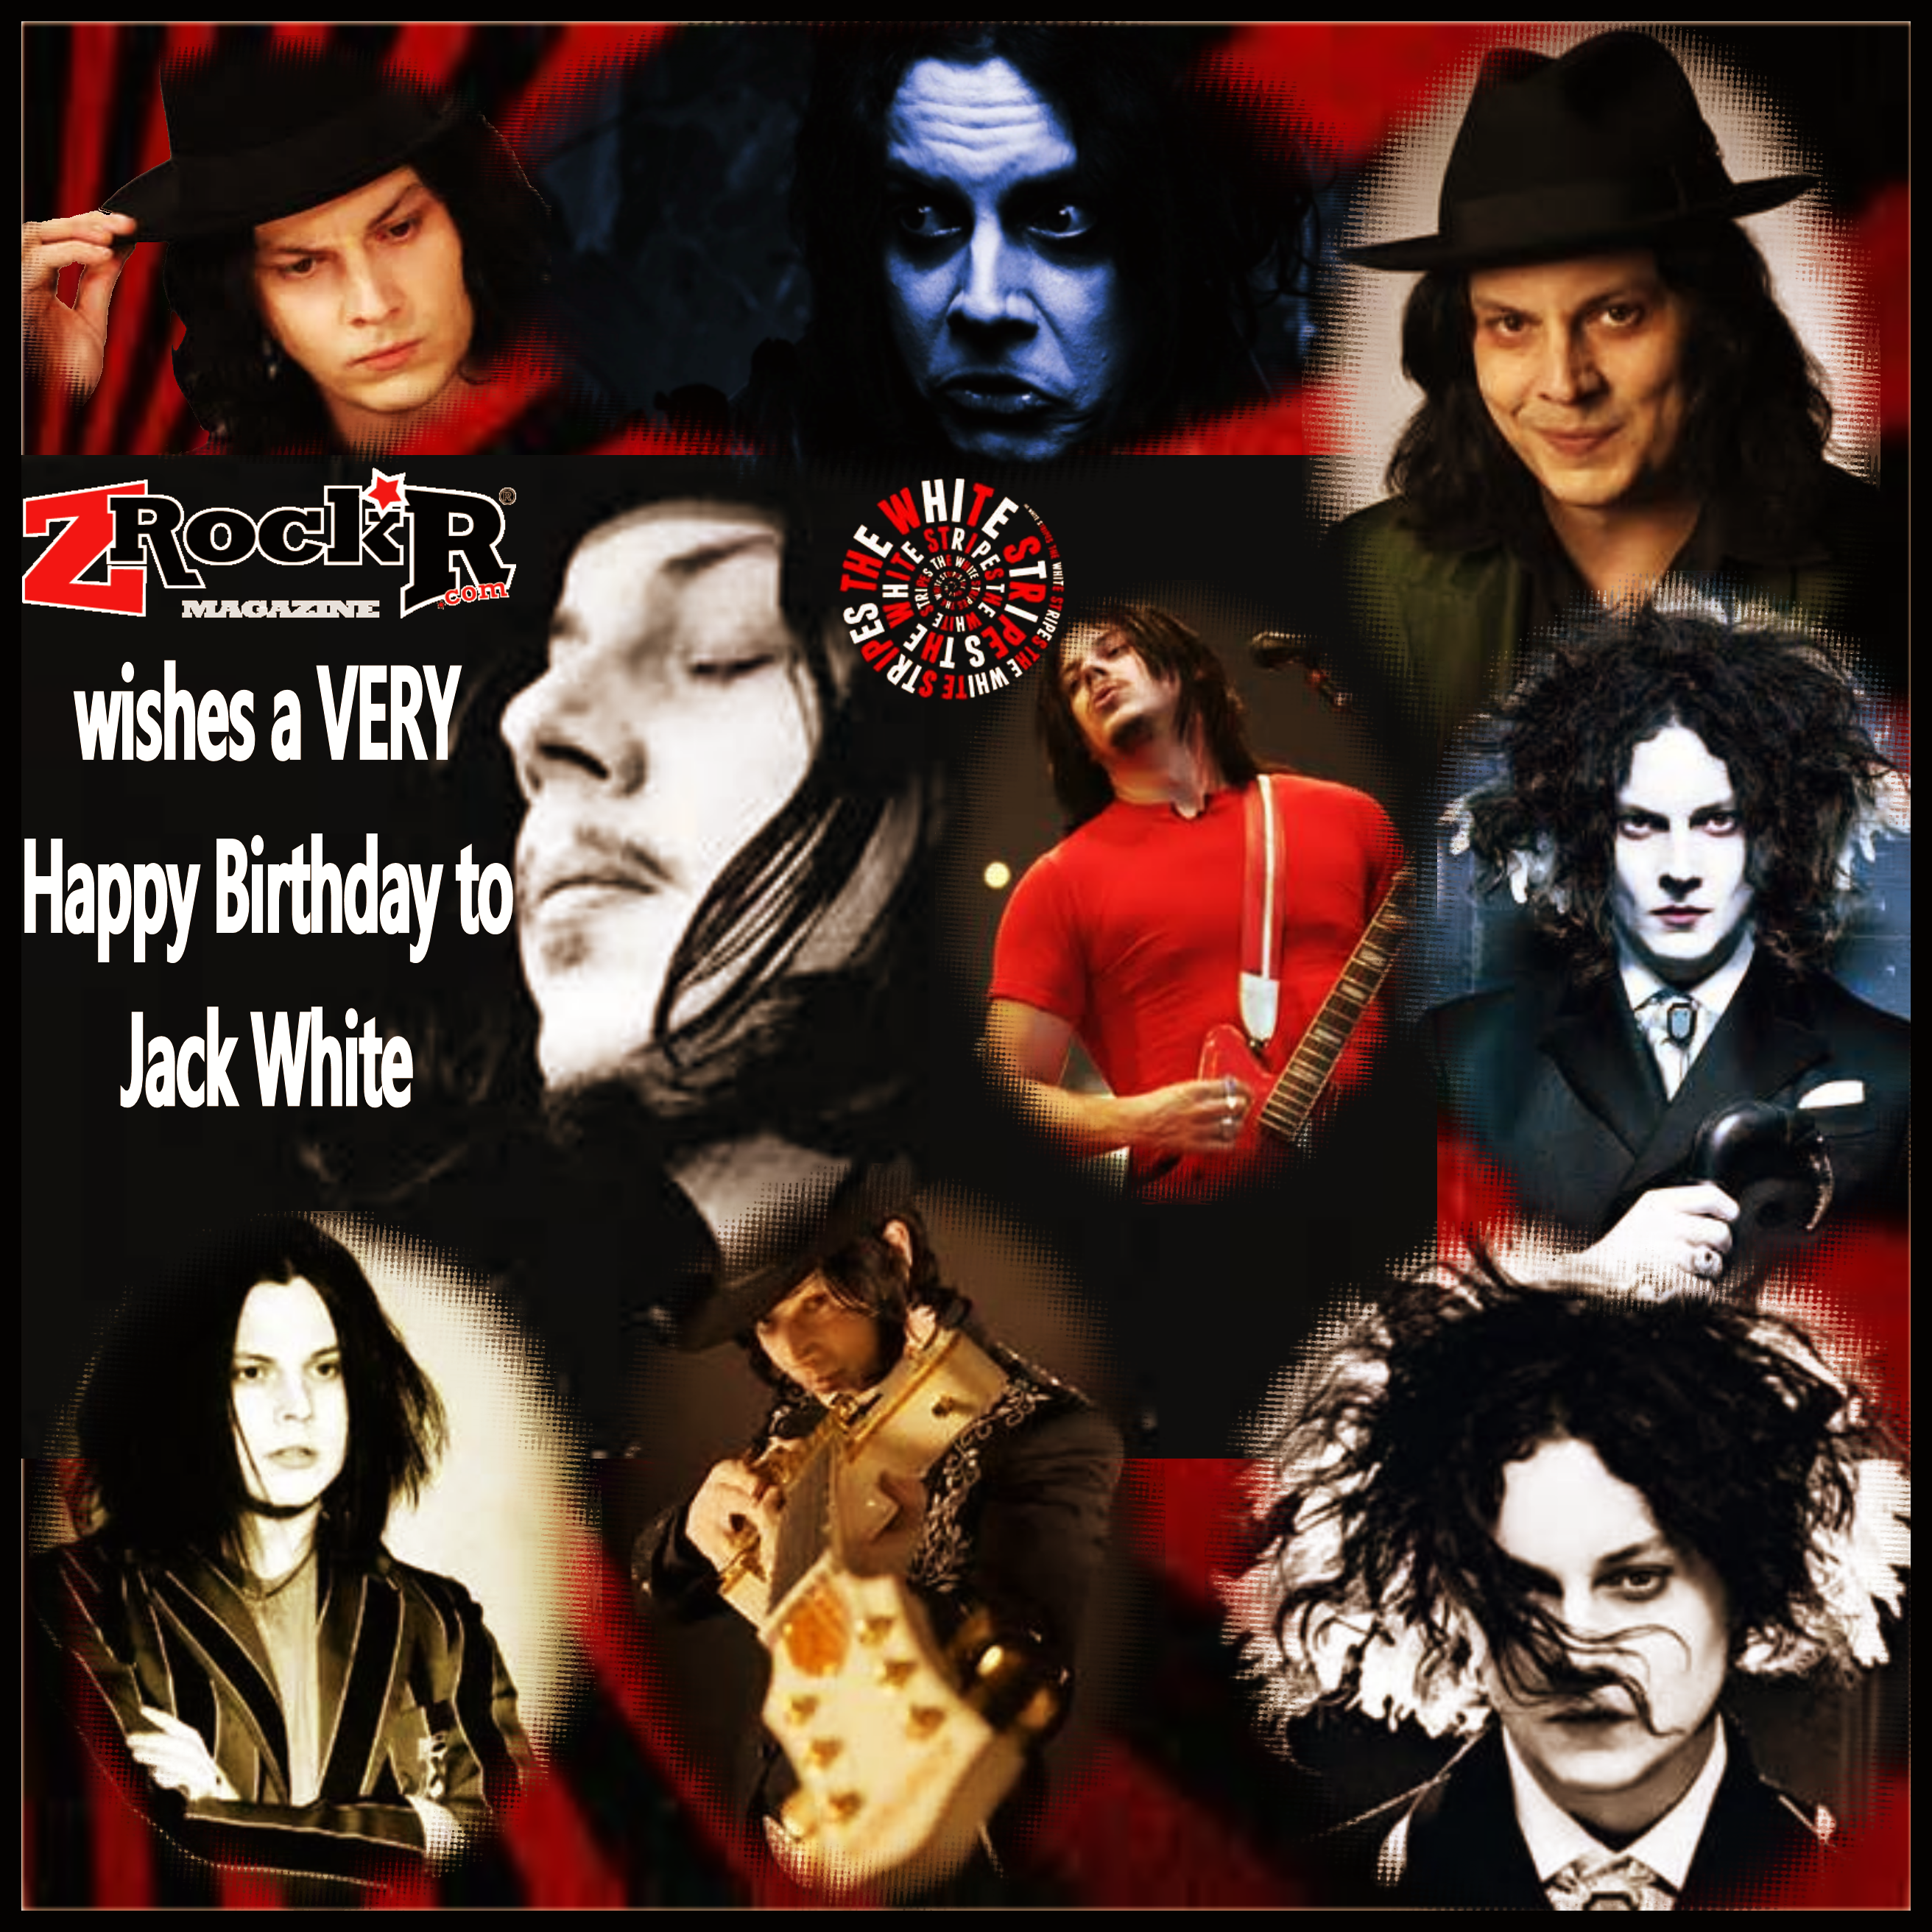 Jack White collage' LisaKay Allen/PassionFeast photoartist